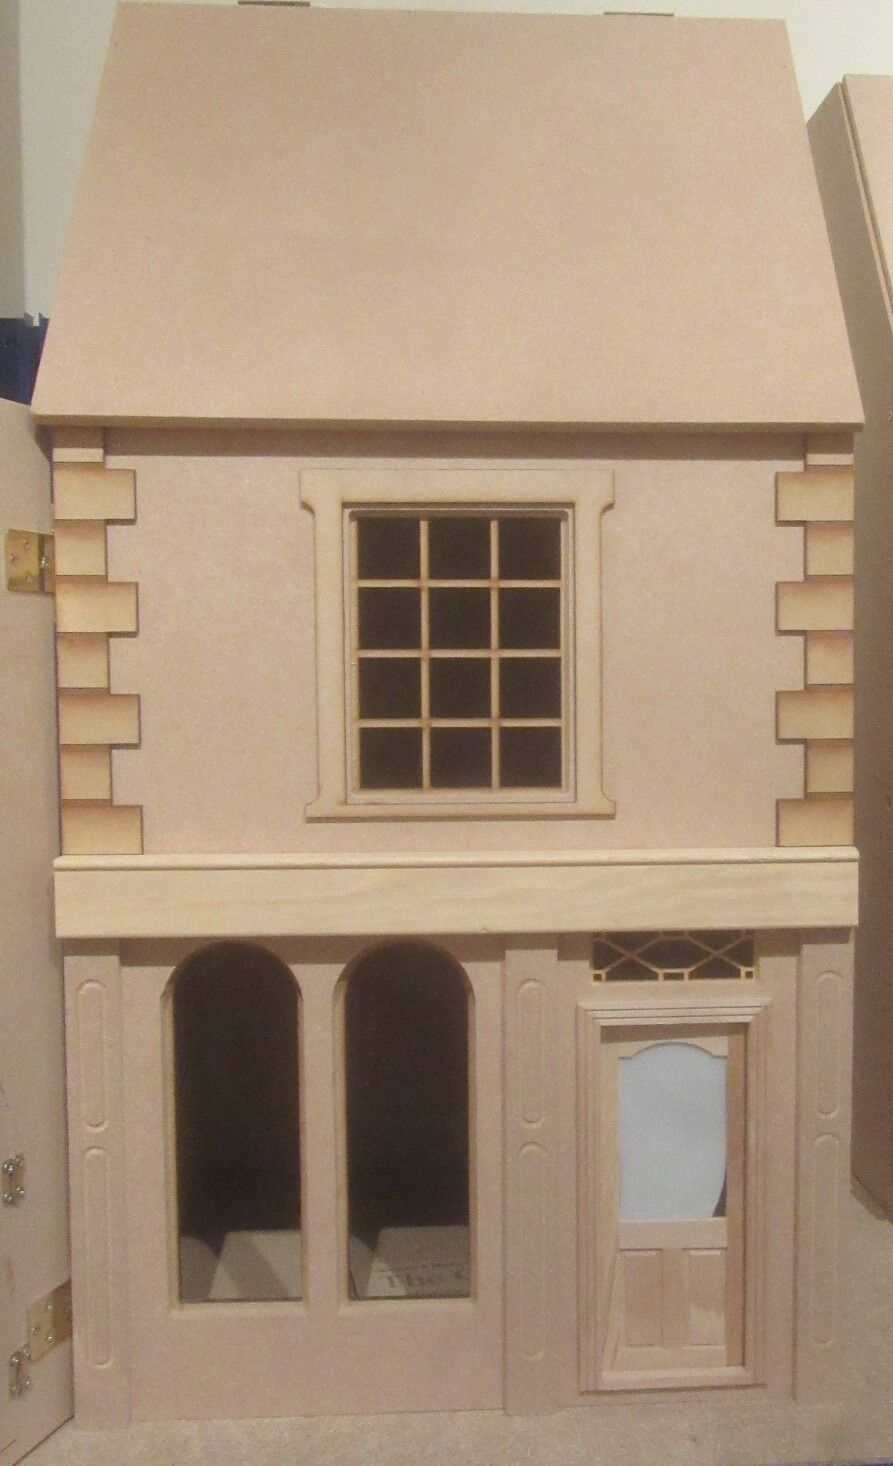 1 12 scale Dolls House Quainton Shop No1 12DHD021